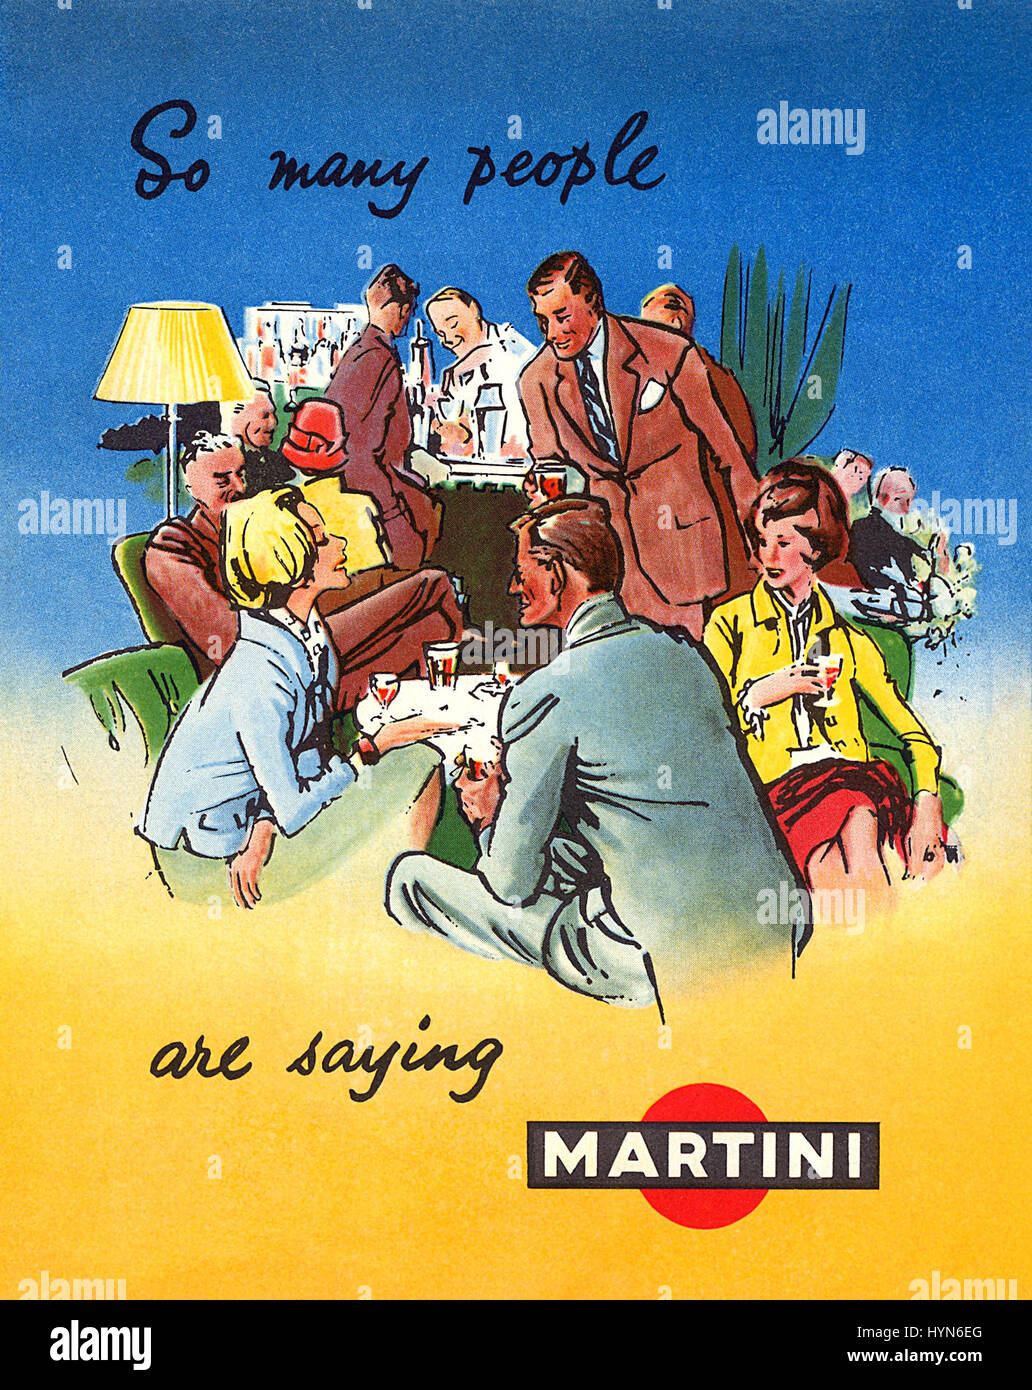 Front cover of a Martini leaflet, illustrated by Francis Marshall. - Stock Image